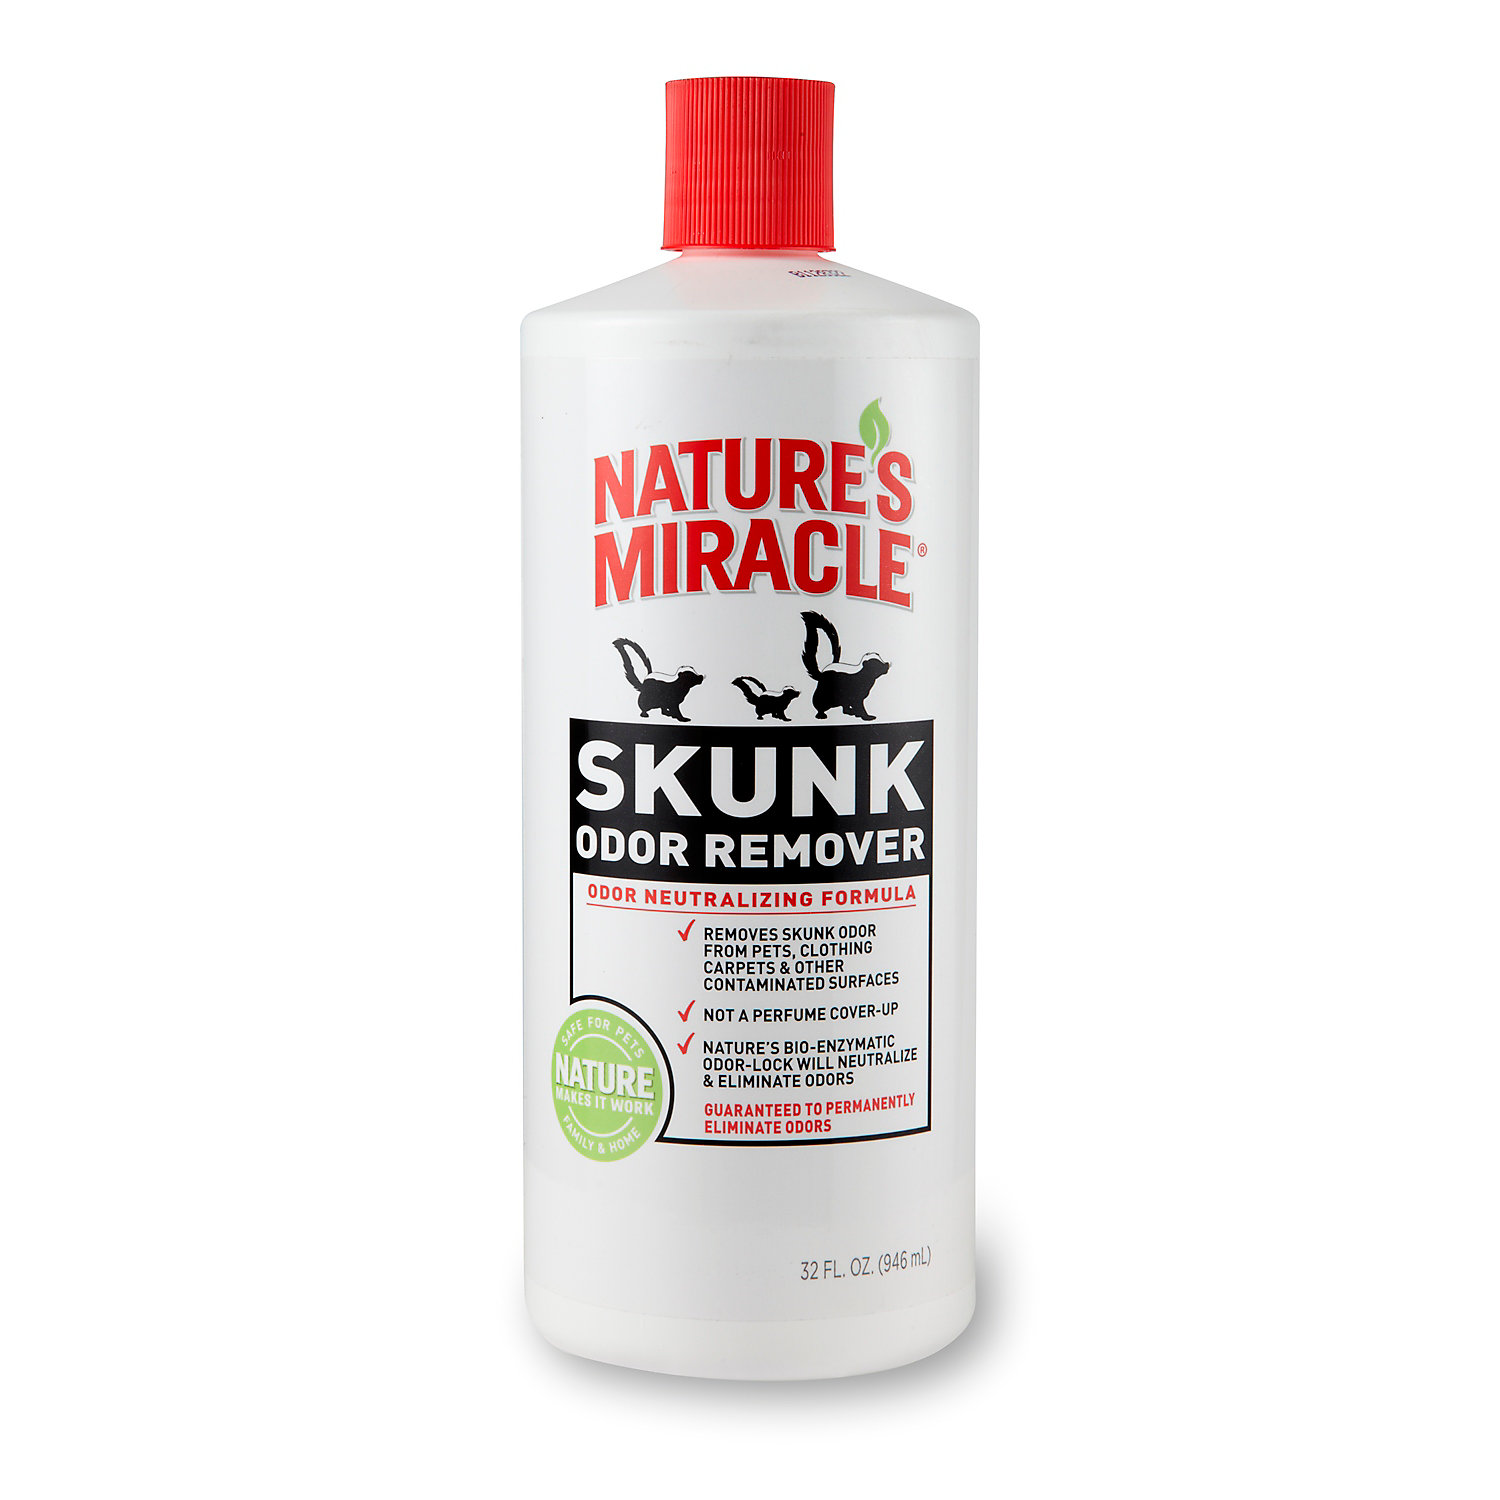 Nature's Miracle Skunk Odor Remover, 32 oz.